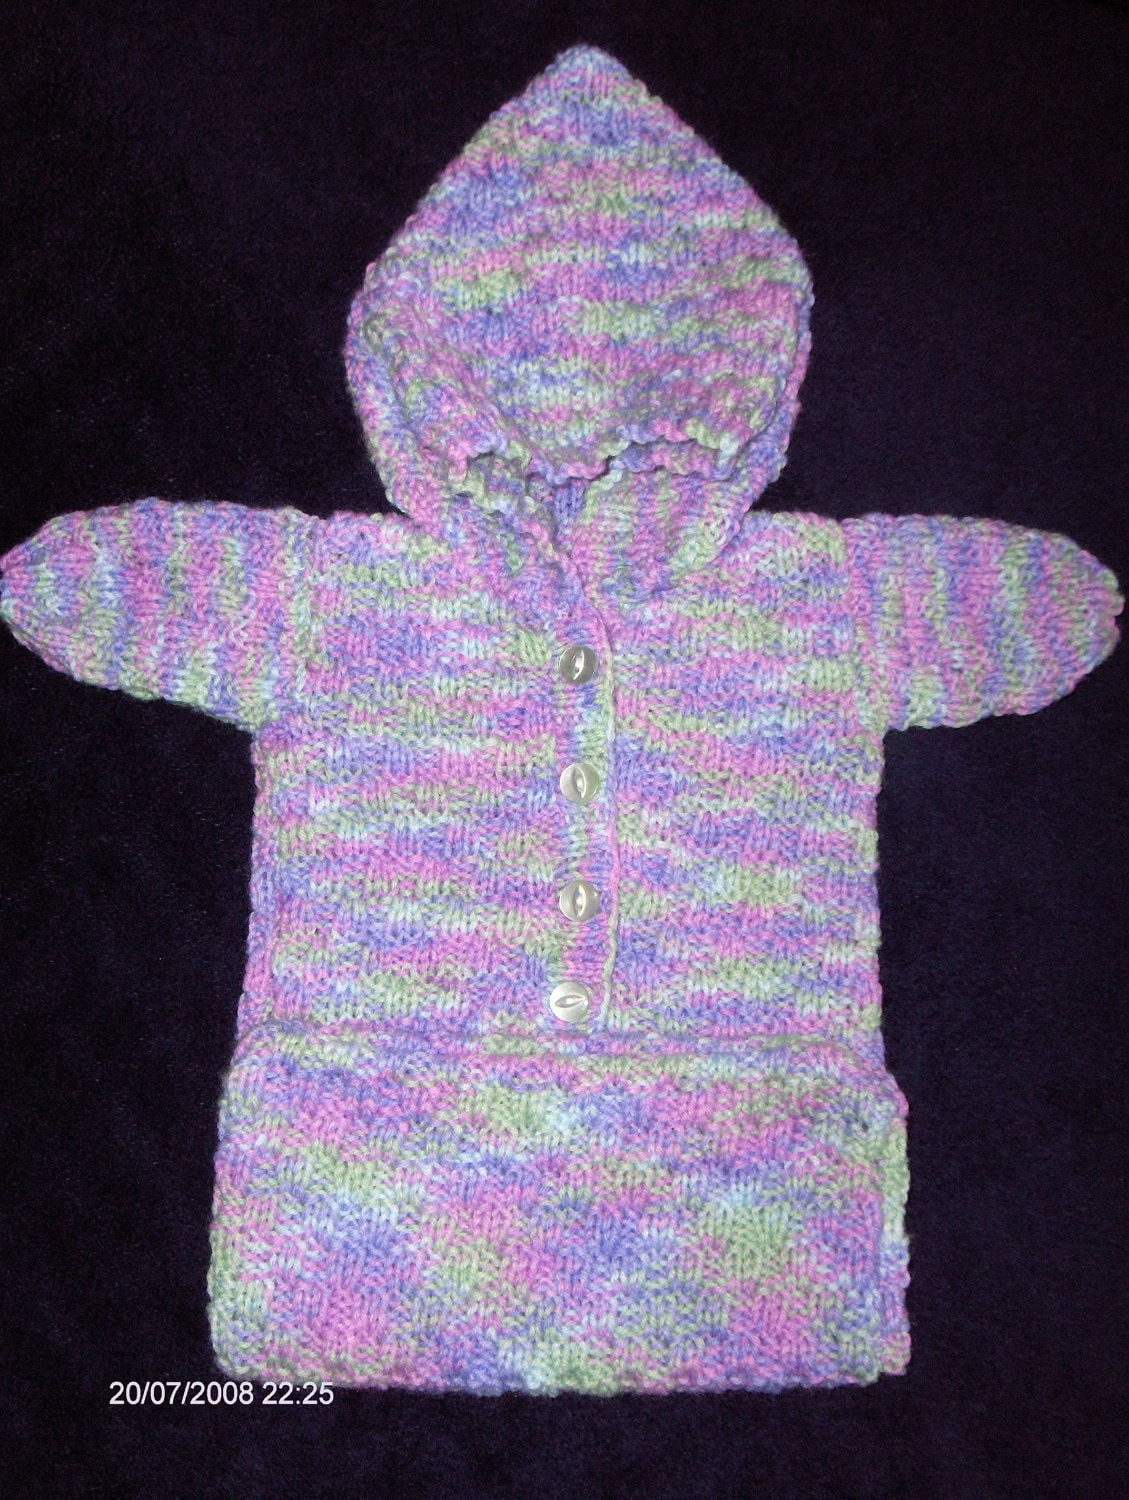 Baby Sleeping Bag Knitting Pattern : Premature Baby Sleeping Bag Knitting Pattern by scottishcraft